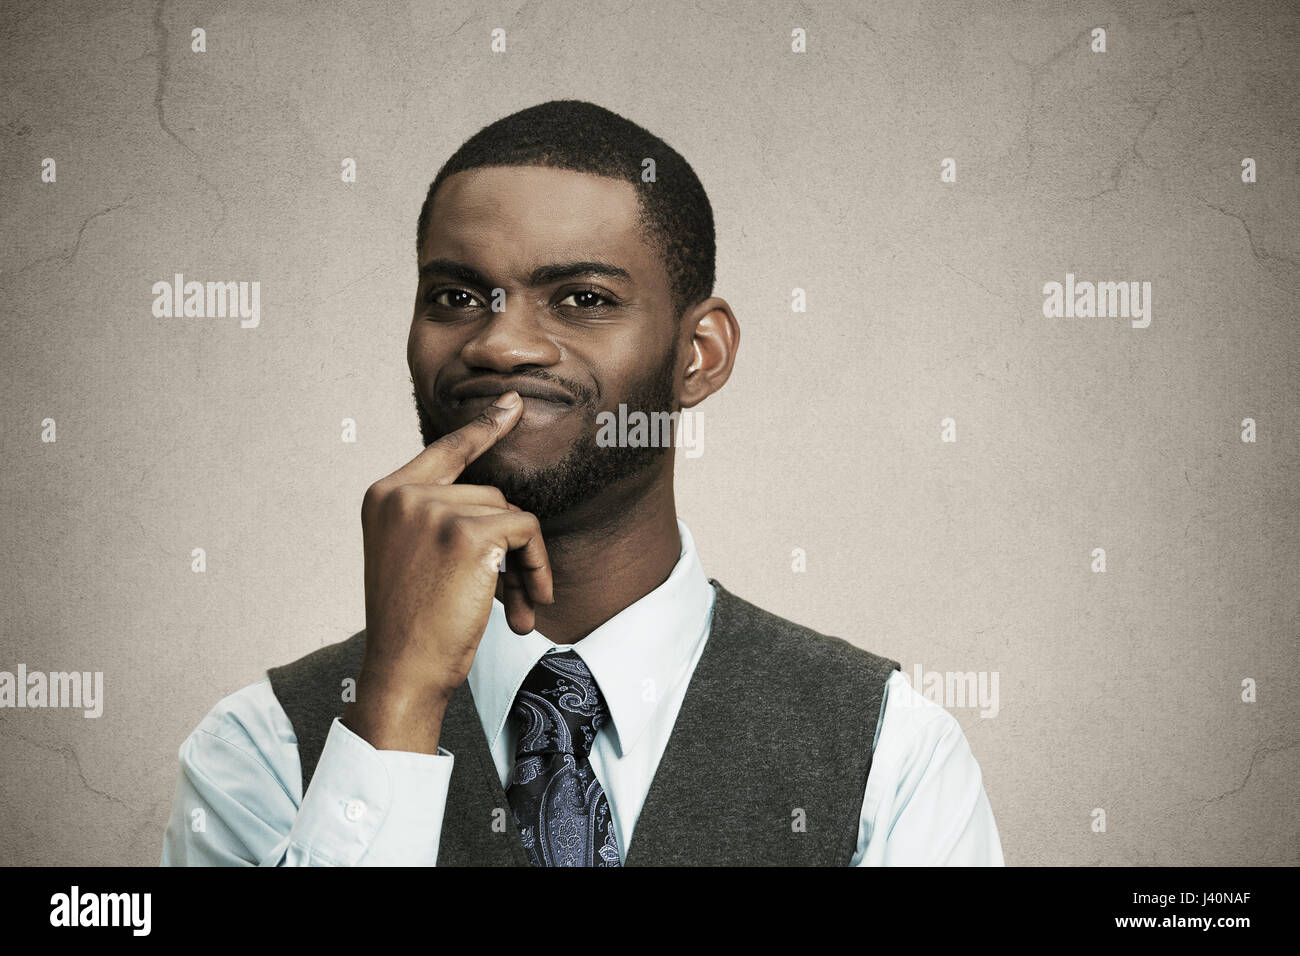 Closeup portrait young puzzled business man thinking deciding deeply about something finger on lips looking confused - Stock Image